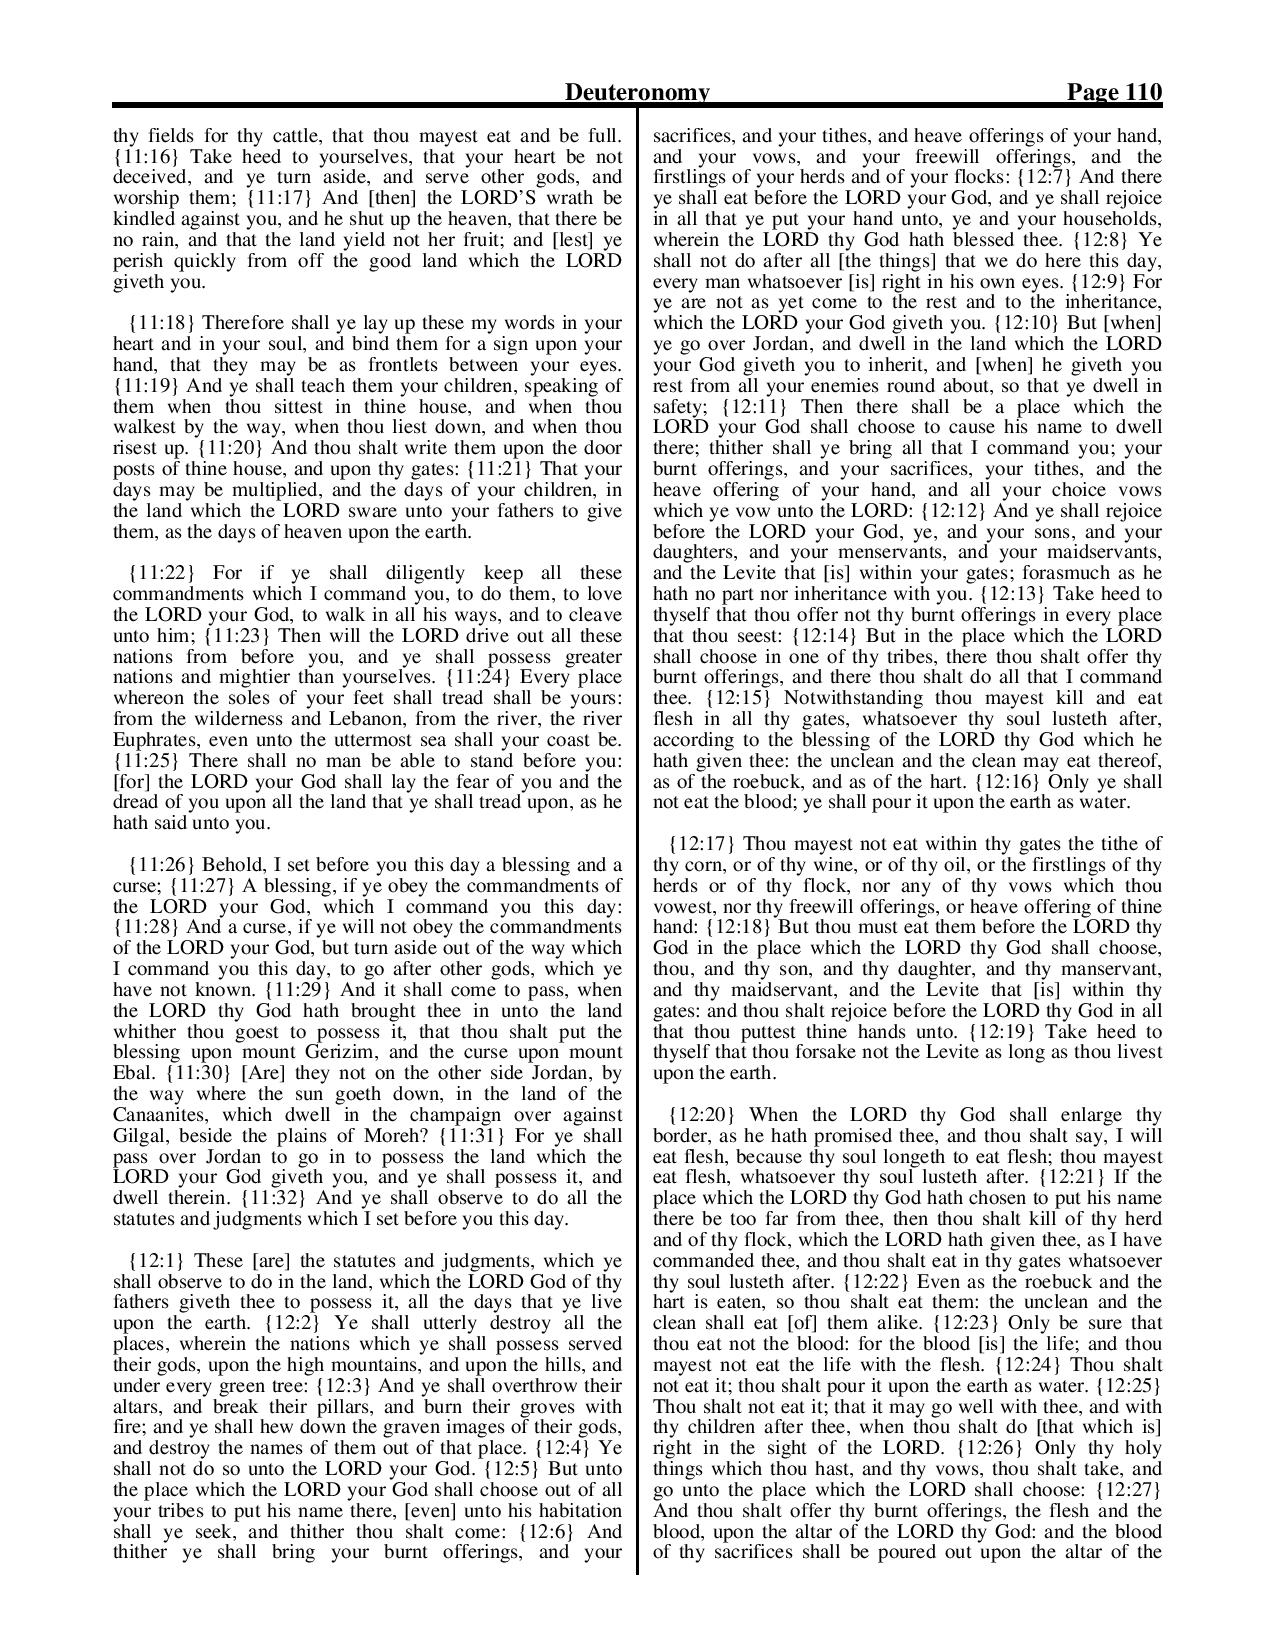 King-James-Bible-KJV-Bible-PDF-page-131